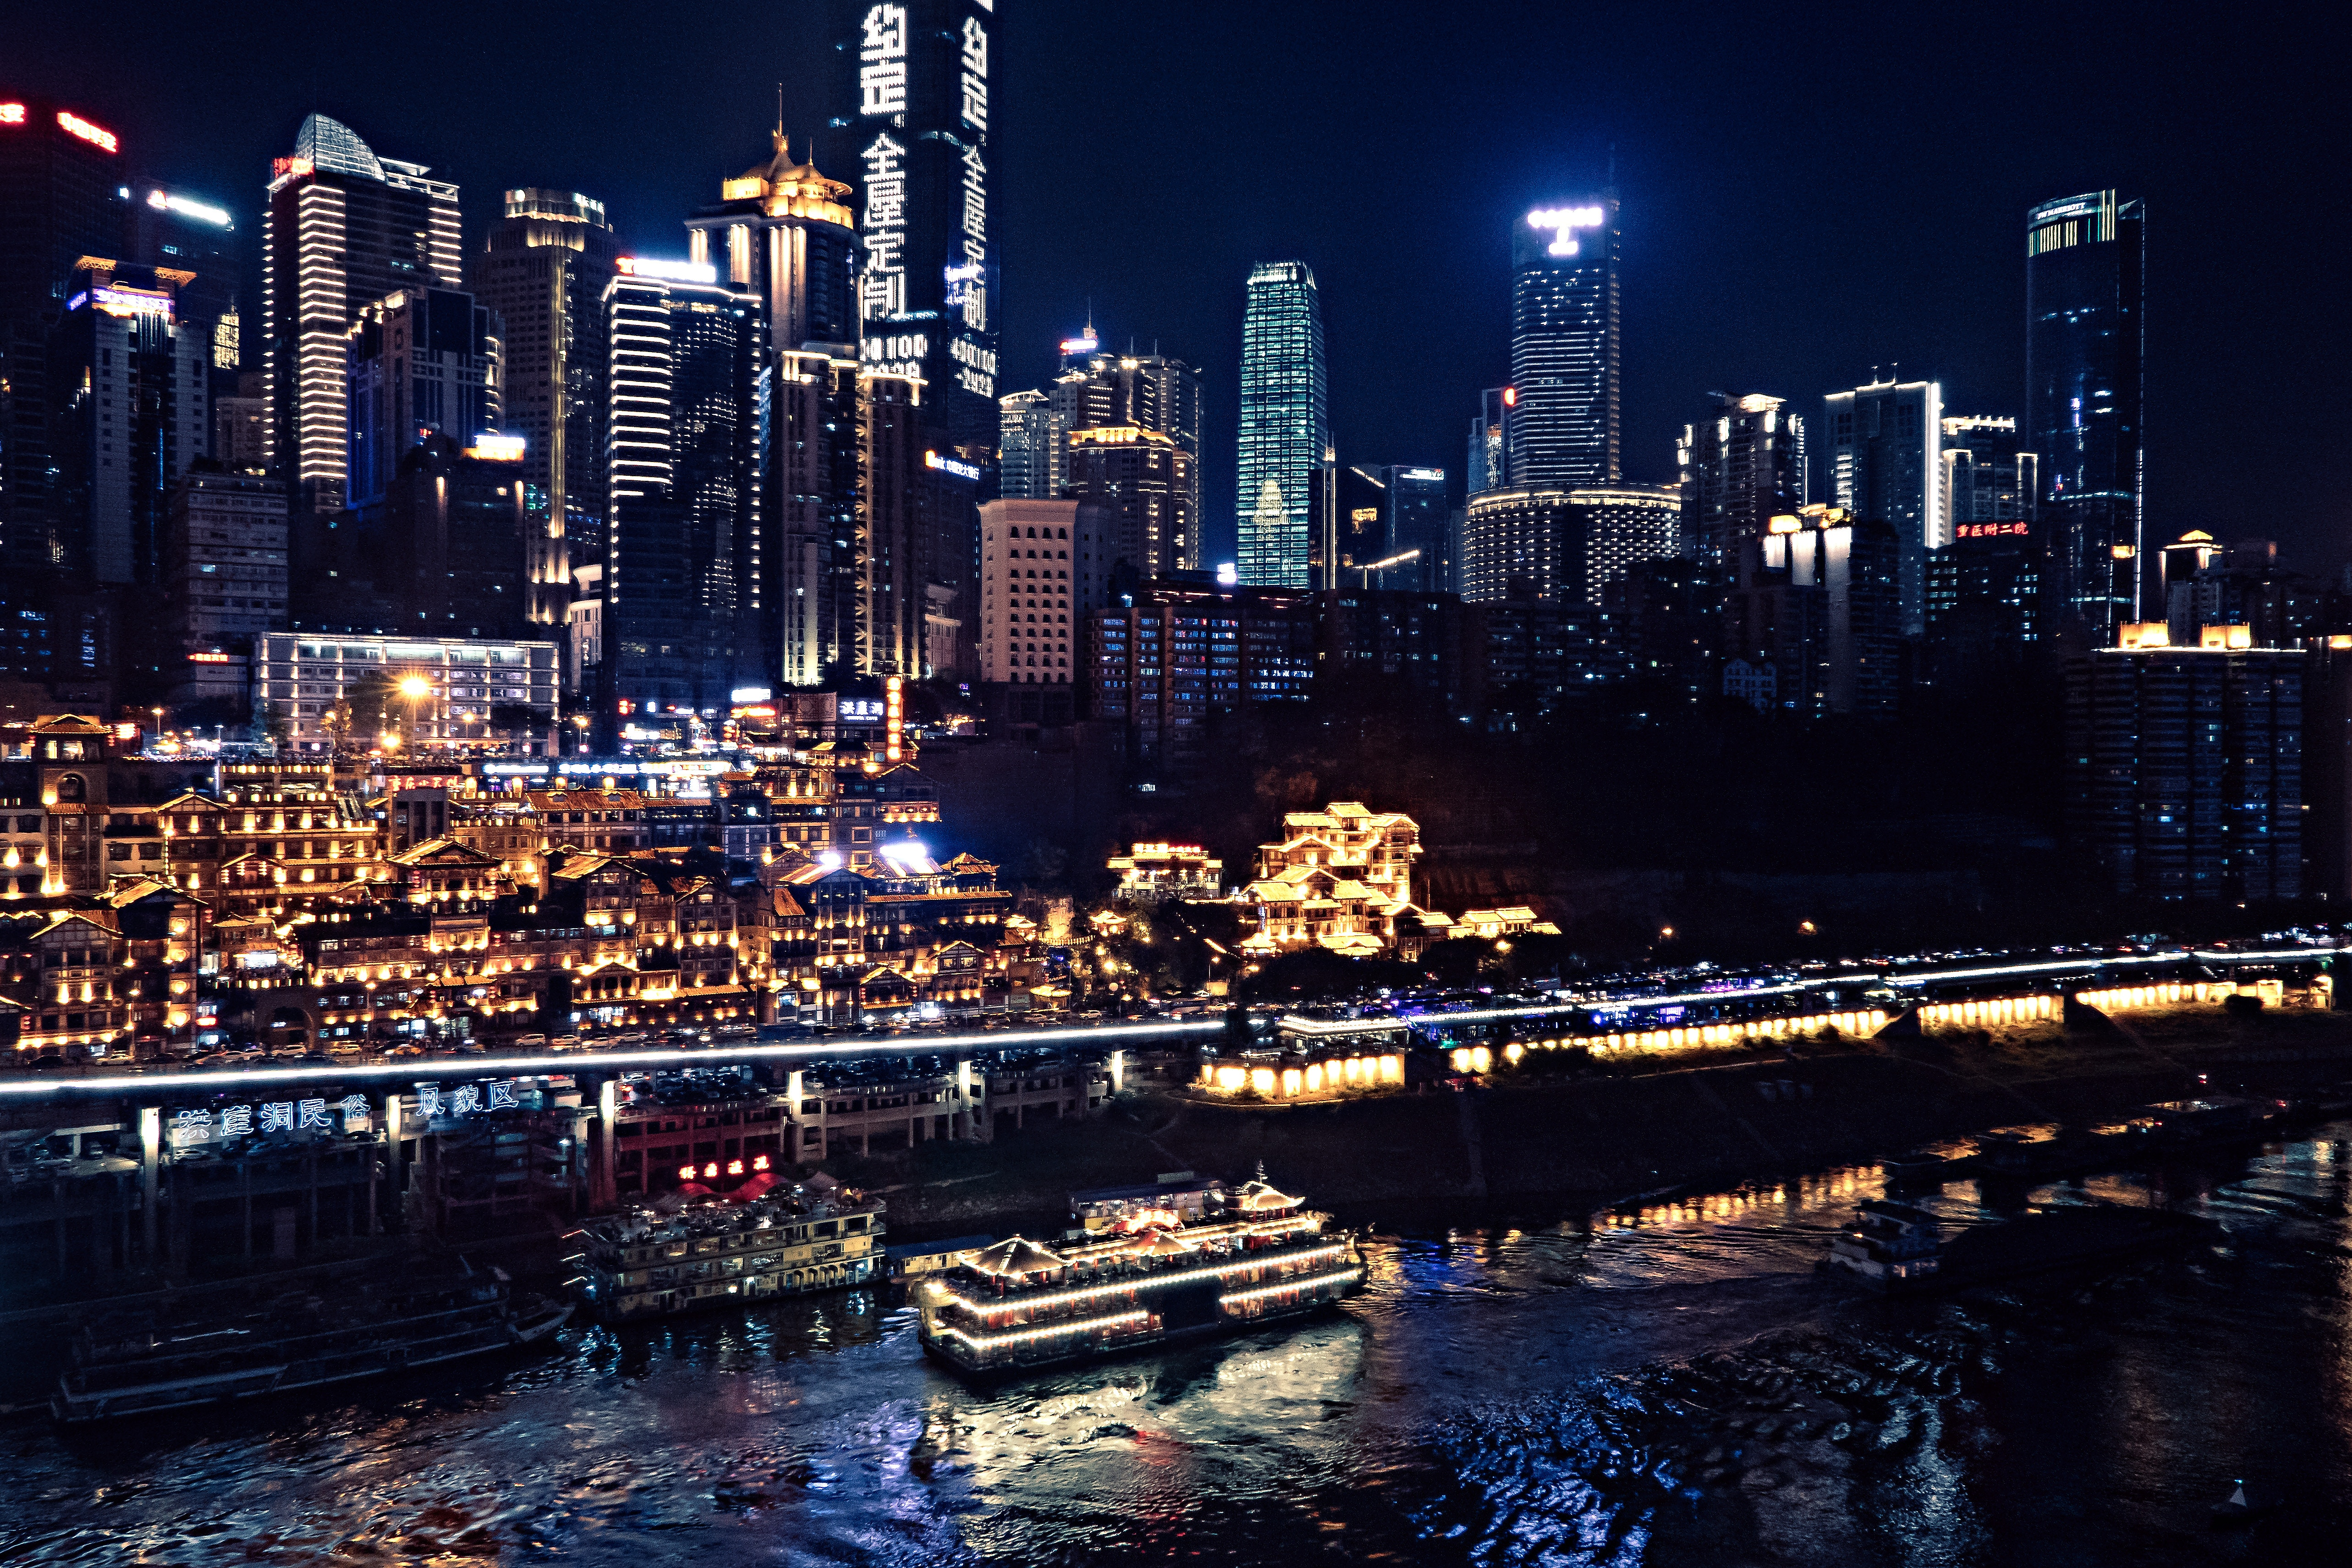 150554 download wallpaper Chongqing, China, Skyscrapers, Building, Architecture, Cities screensavers and pictures for free